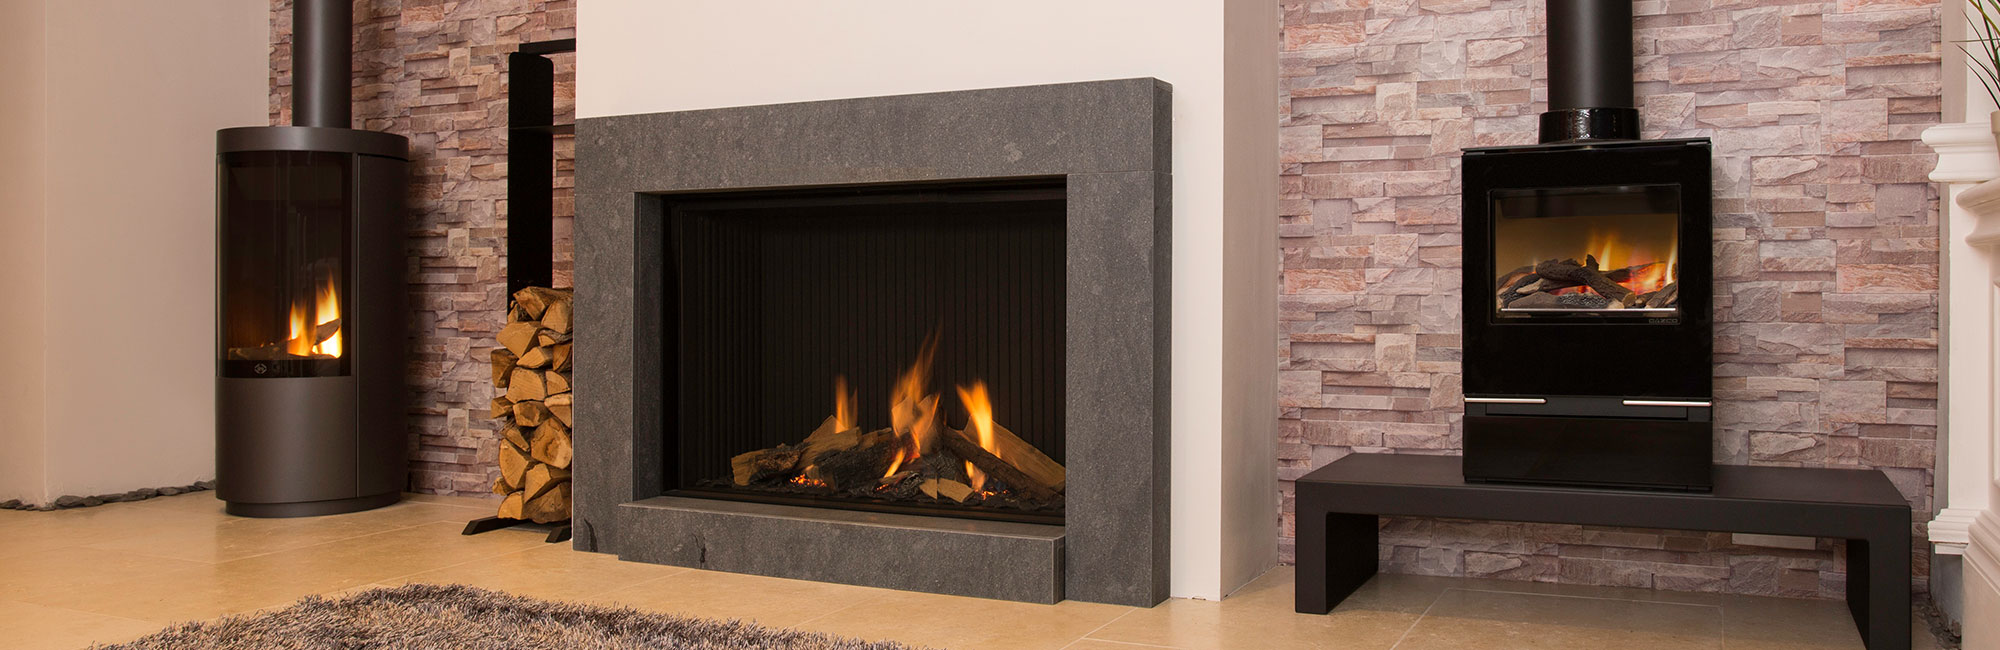 Balanced Flue Fires Nottingham  Derby  The Fireplace Studio